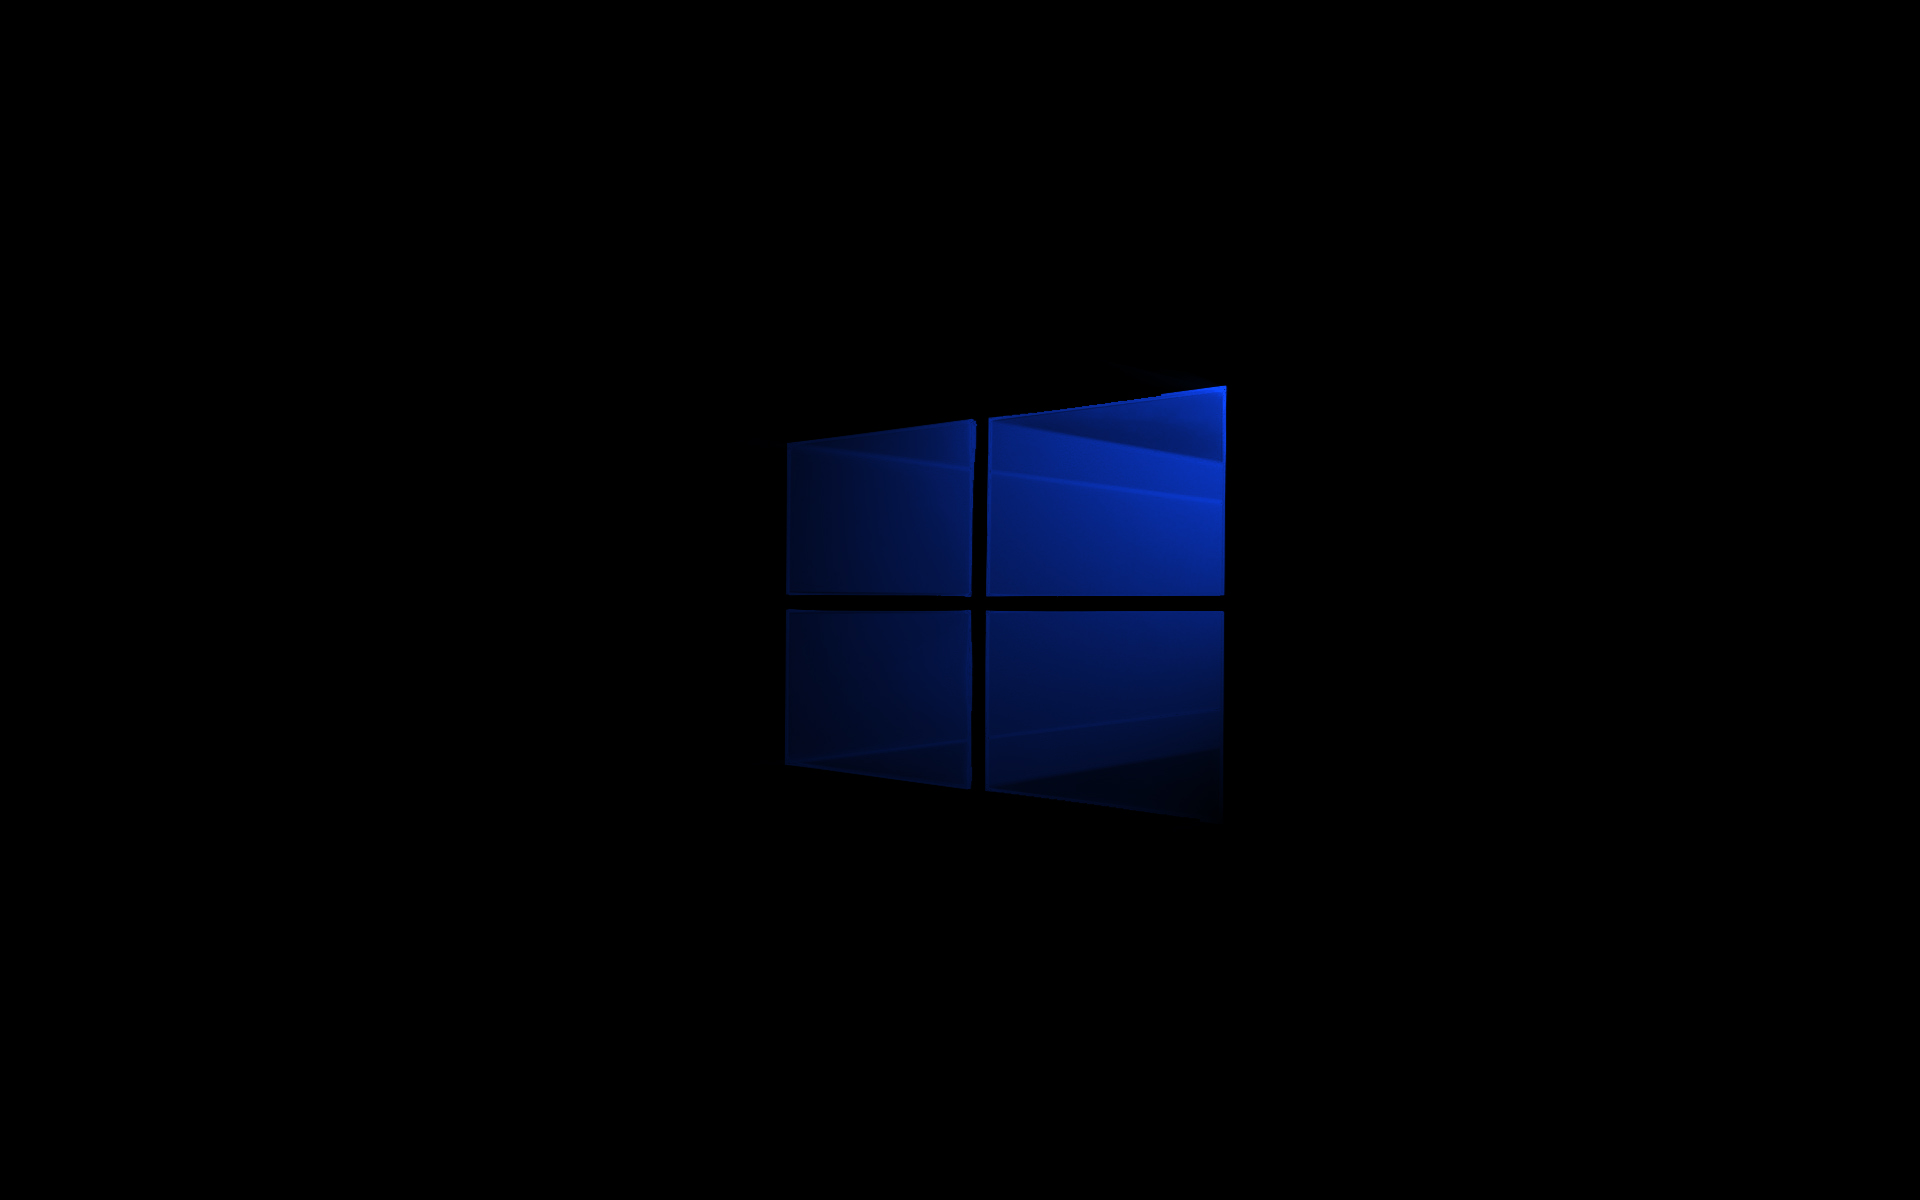 10 New Windows 8 Wallpaper Hd 3d For Desktop Full Hd 1920: Wallpaper For W10